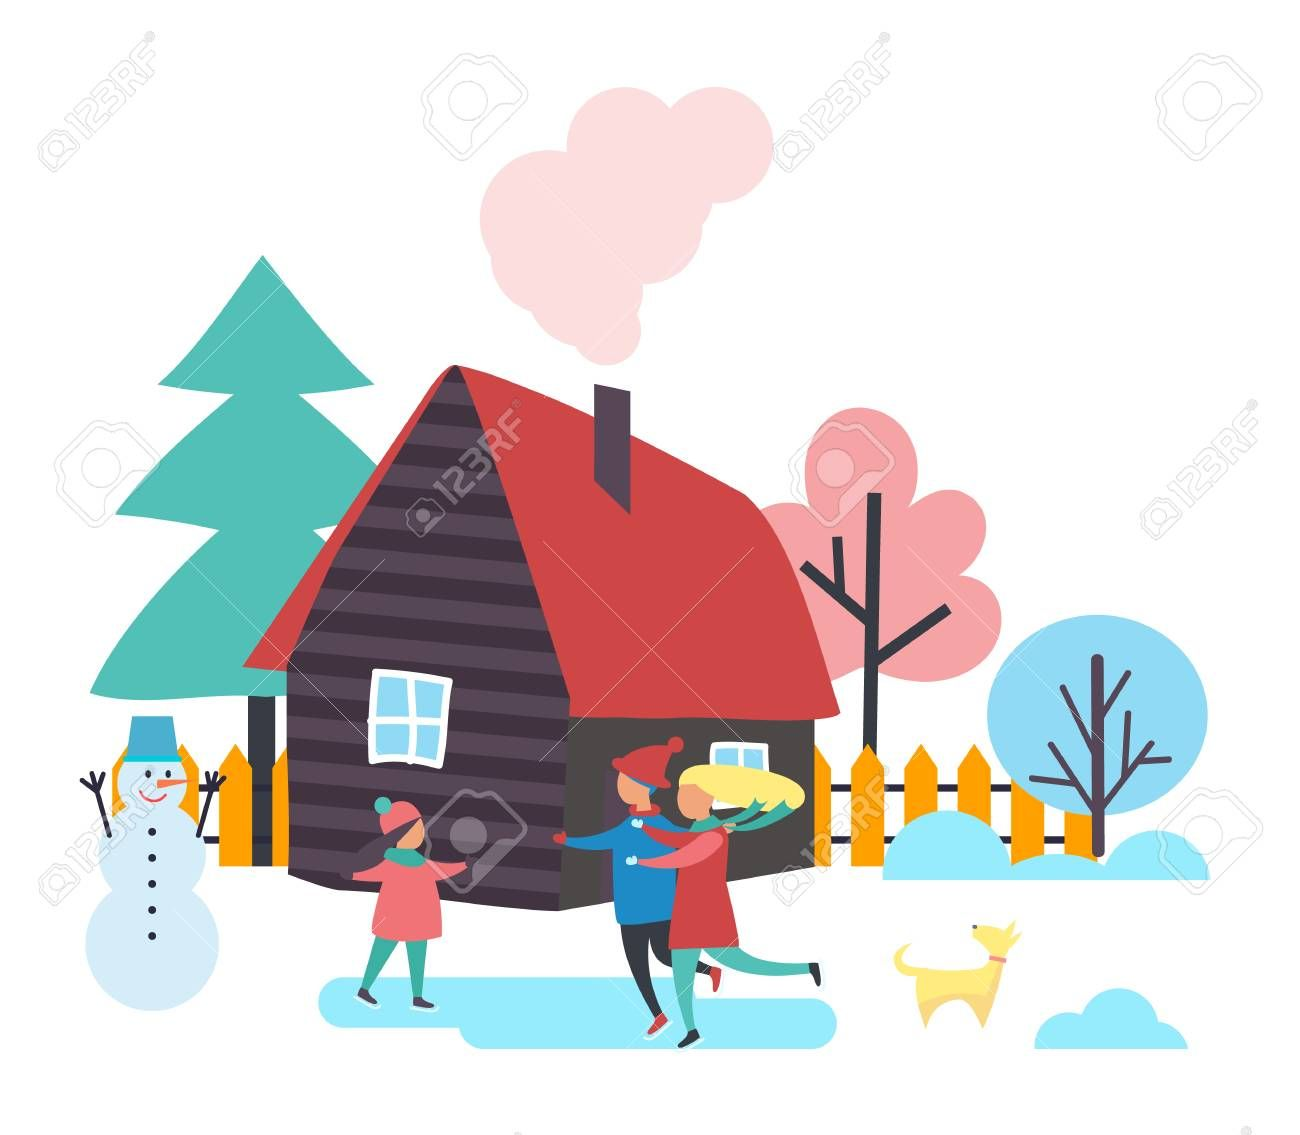 Trees And Houses Winter Season People Spending Time Outdoor Vector Family Of Mother Father And Child Skati Kids Logo Design Space Art Minimalist Logo Design